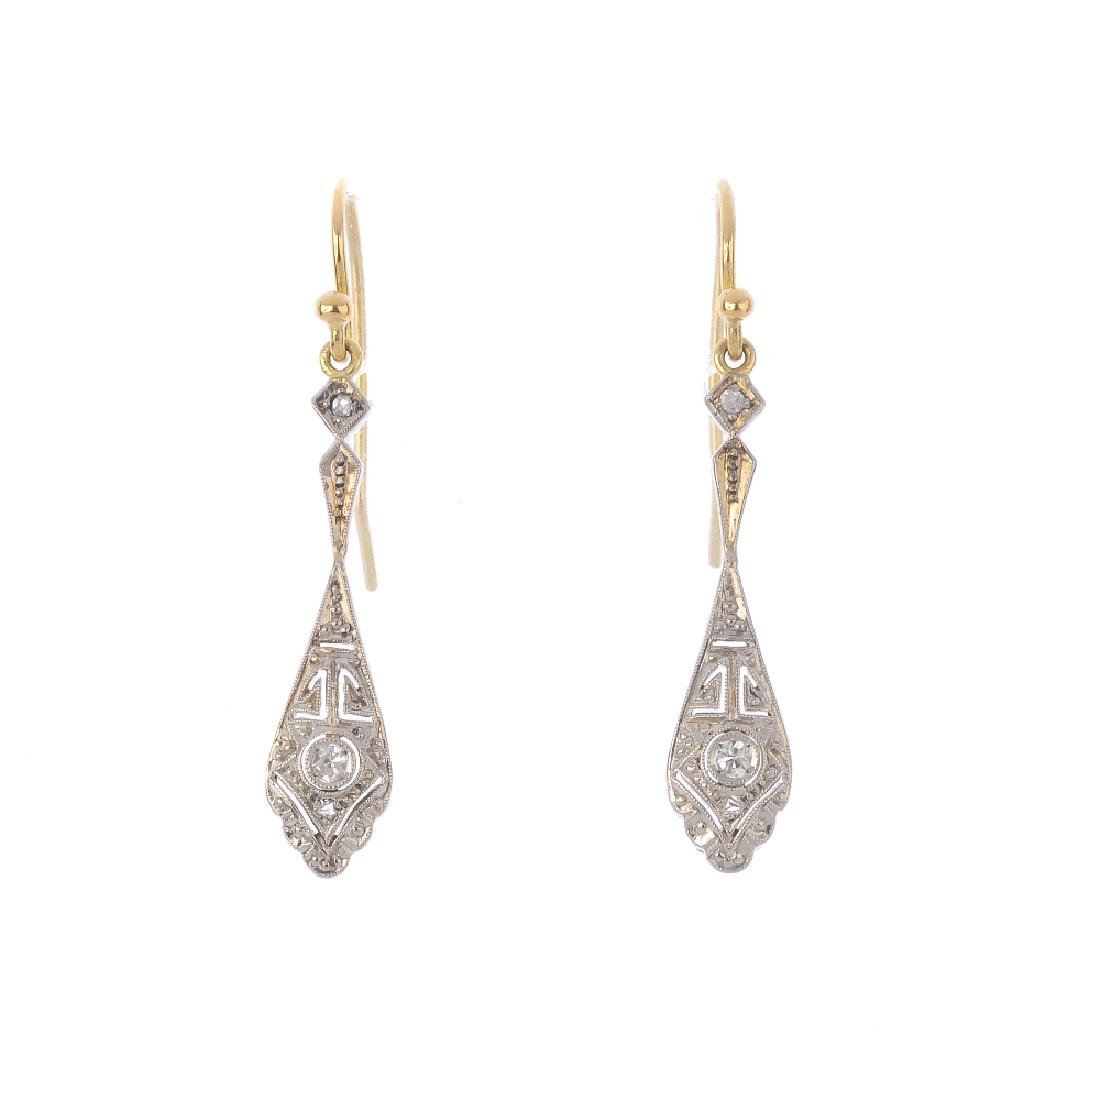 A pair of diamond earrings. Each designed as an old and